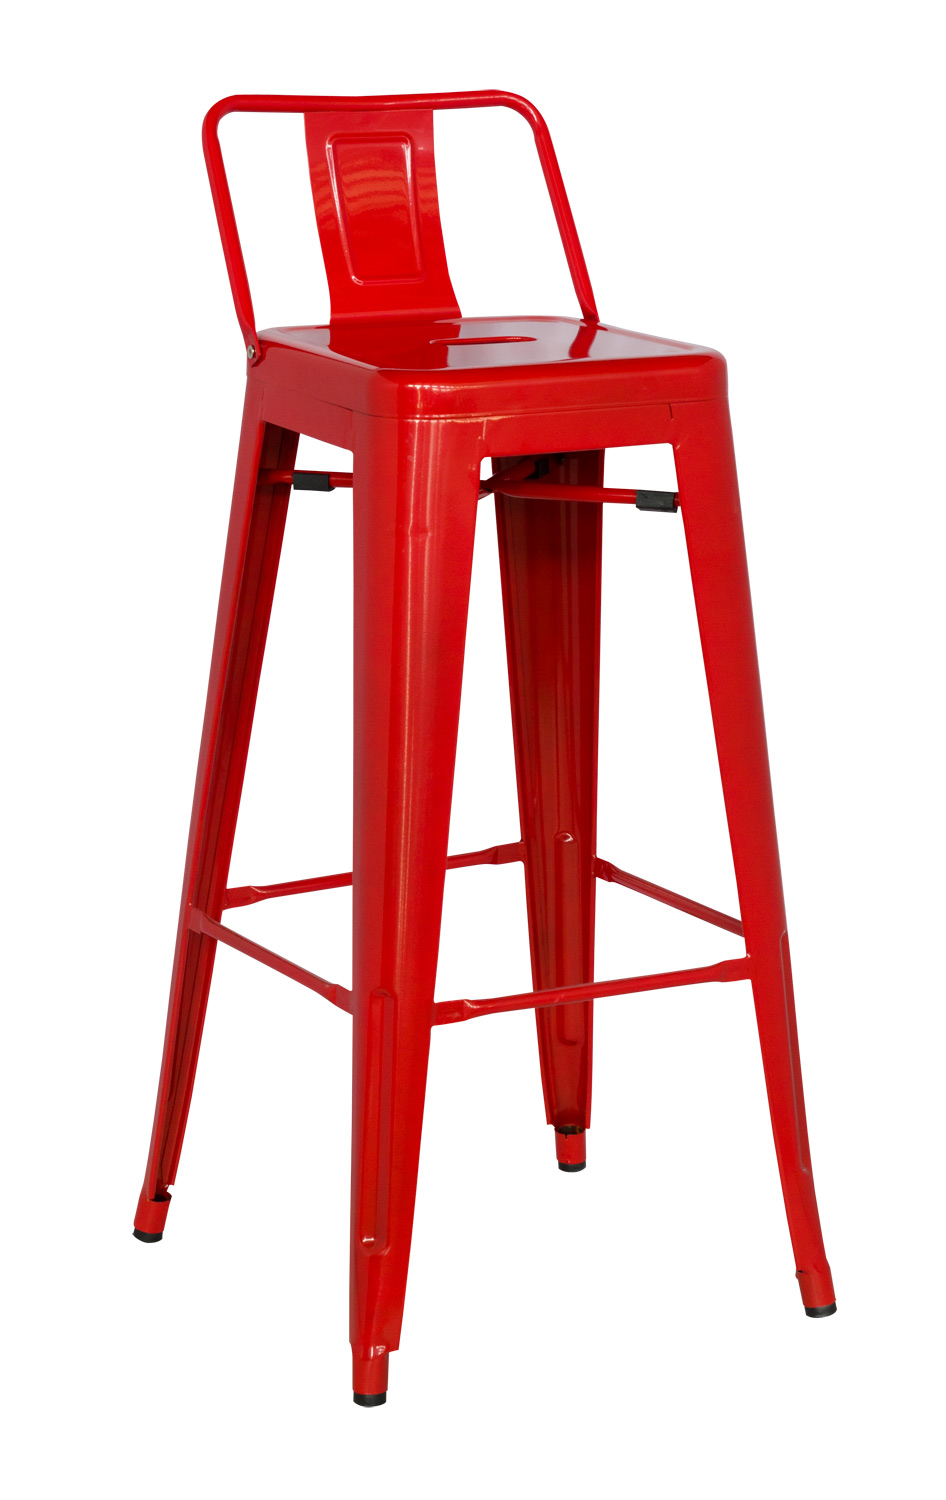 Chintaly Imports 8030 Galvanized Steel Bar Stool - Red